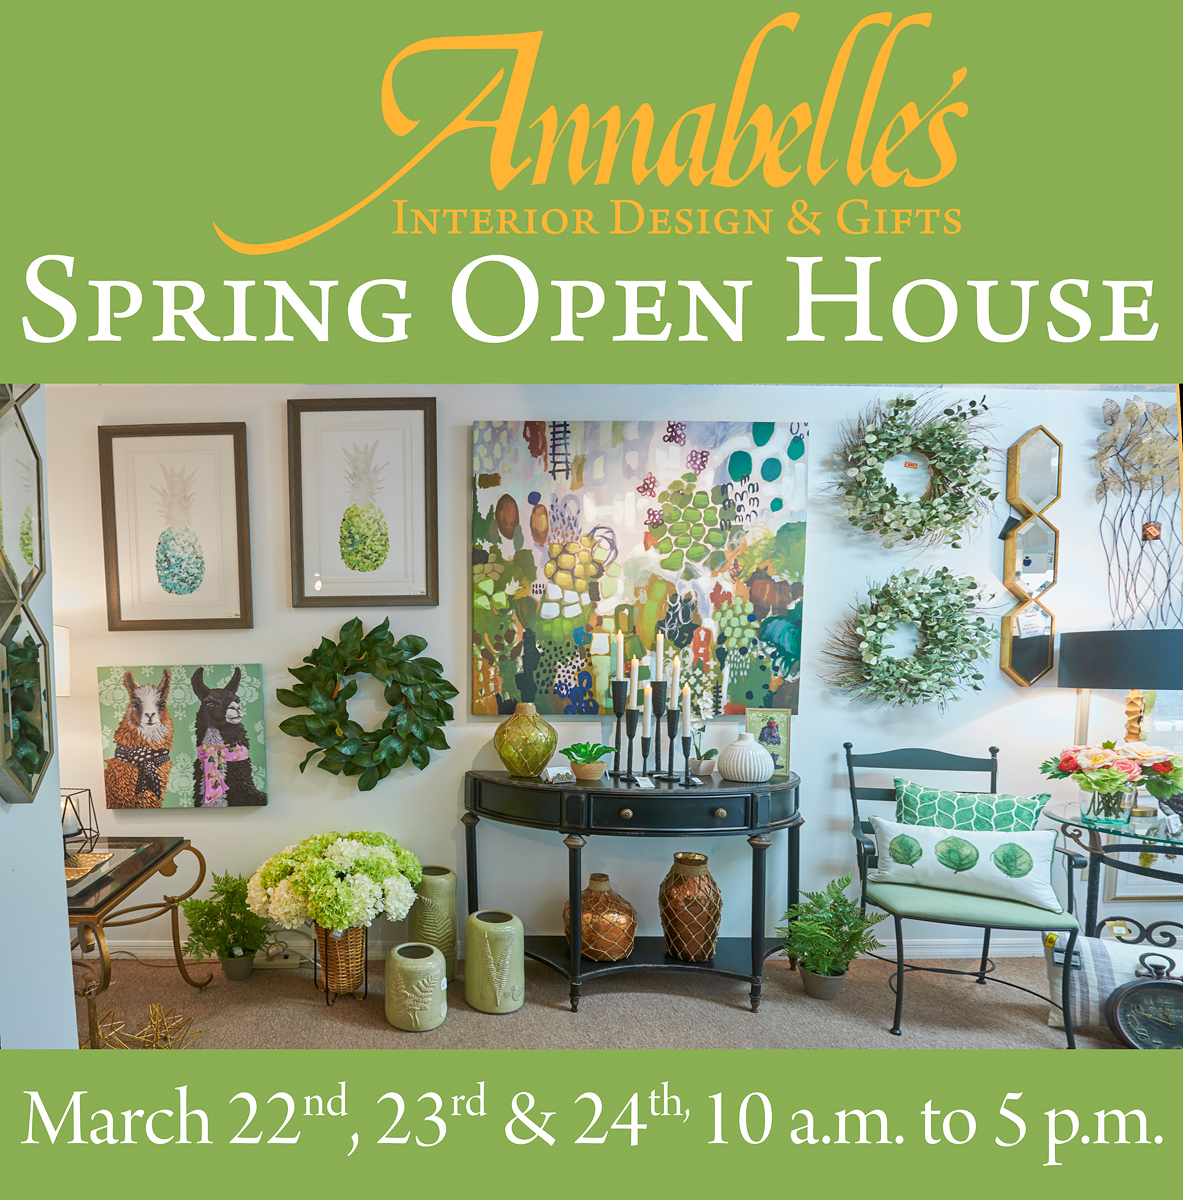 Annabelle's Spring Open House 3/22-3/24 10am-5pm